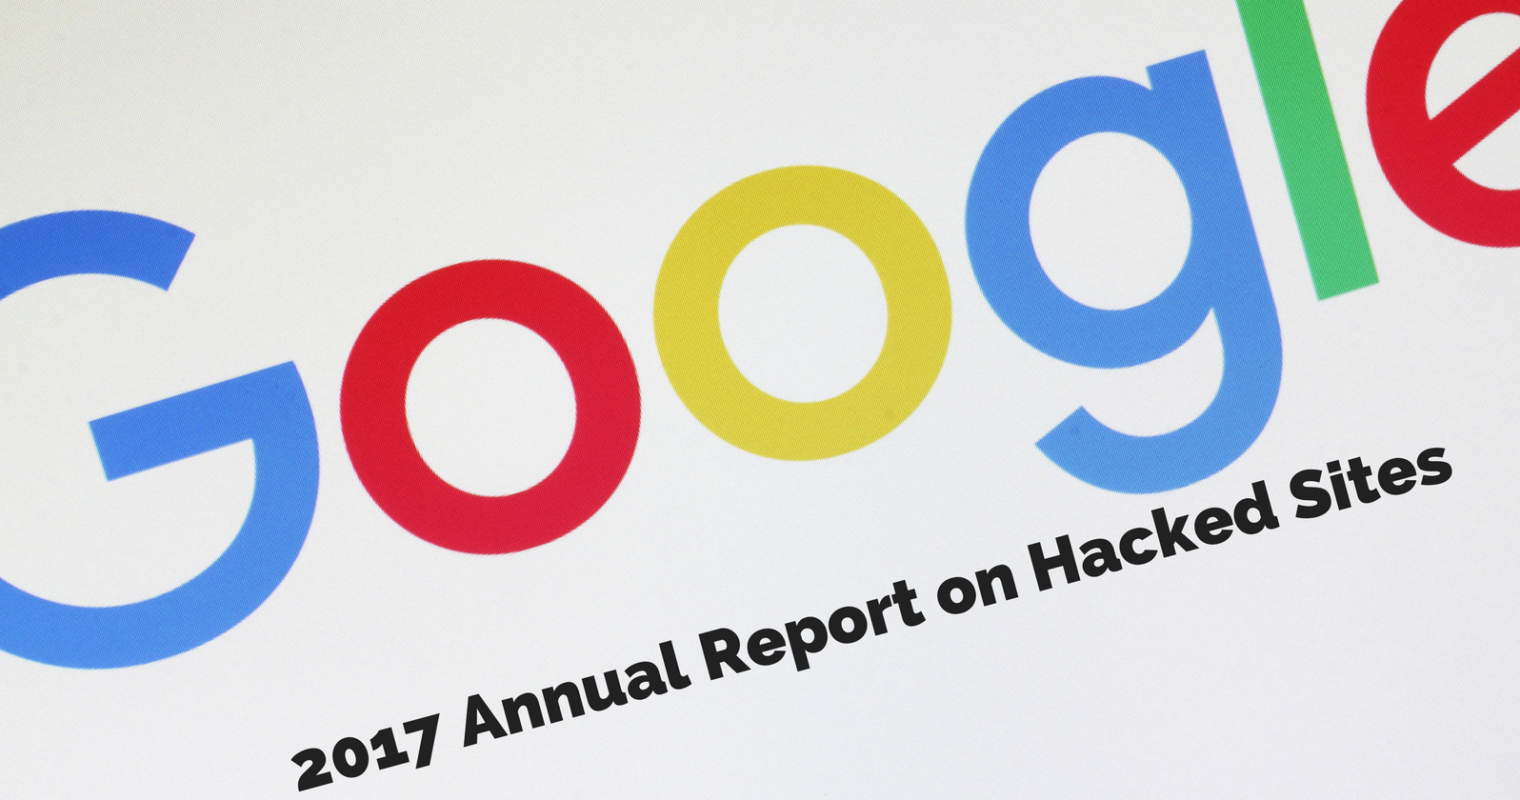 Google: 84% of Webmasters Who Apply for Reconsideration After Site Hacks are Successful